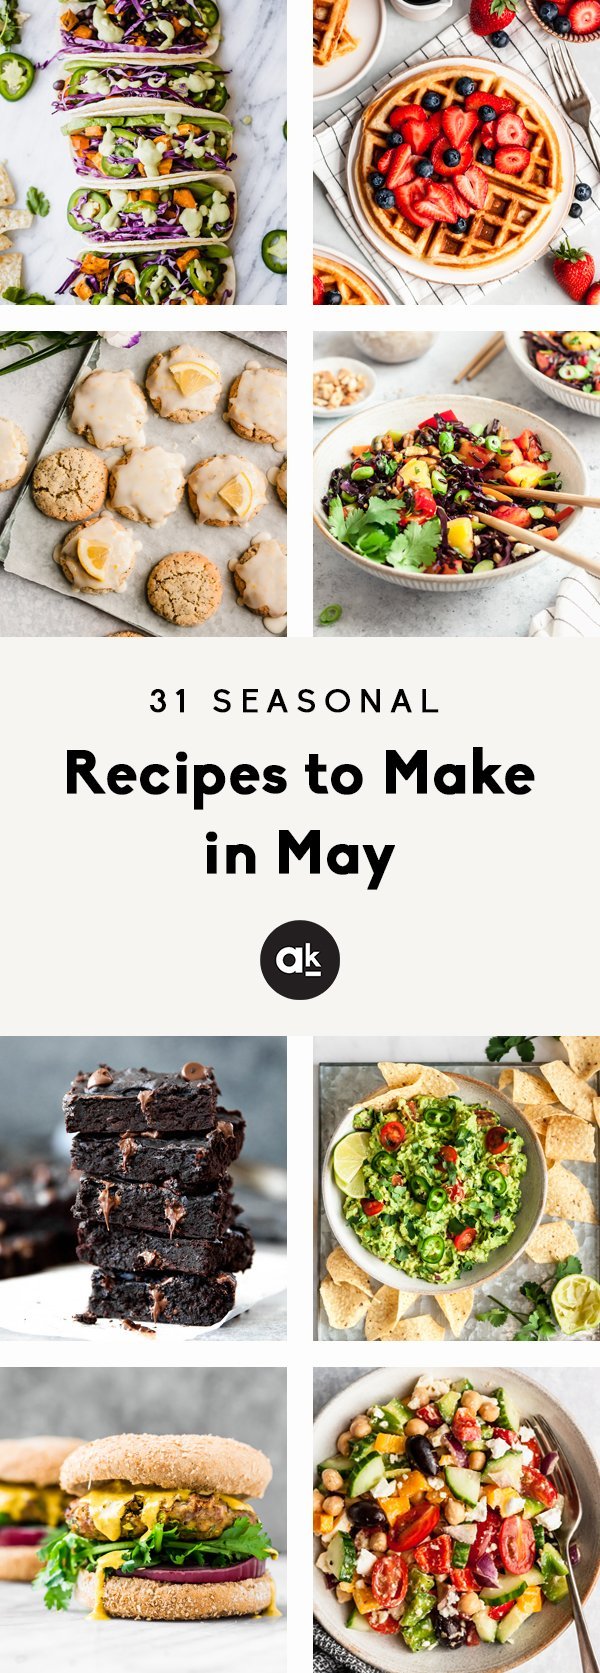 Incredible, seasonal recipes to make in May! These vibrant recipes celebrate spring produce and are just as delicious as they are colorful. From salads and enchiladas to waffles and cakes, these recipes are perfect for any occasion!